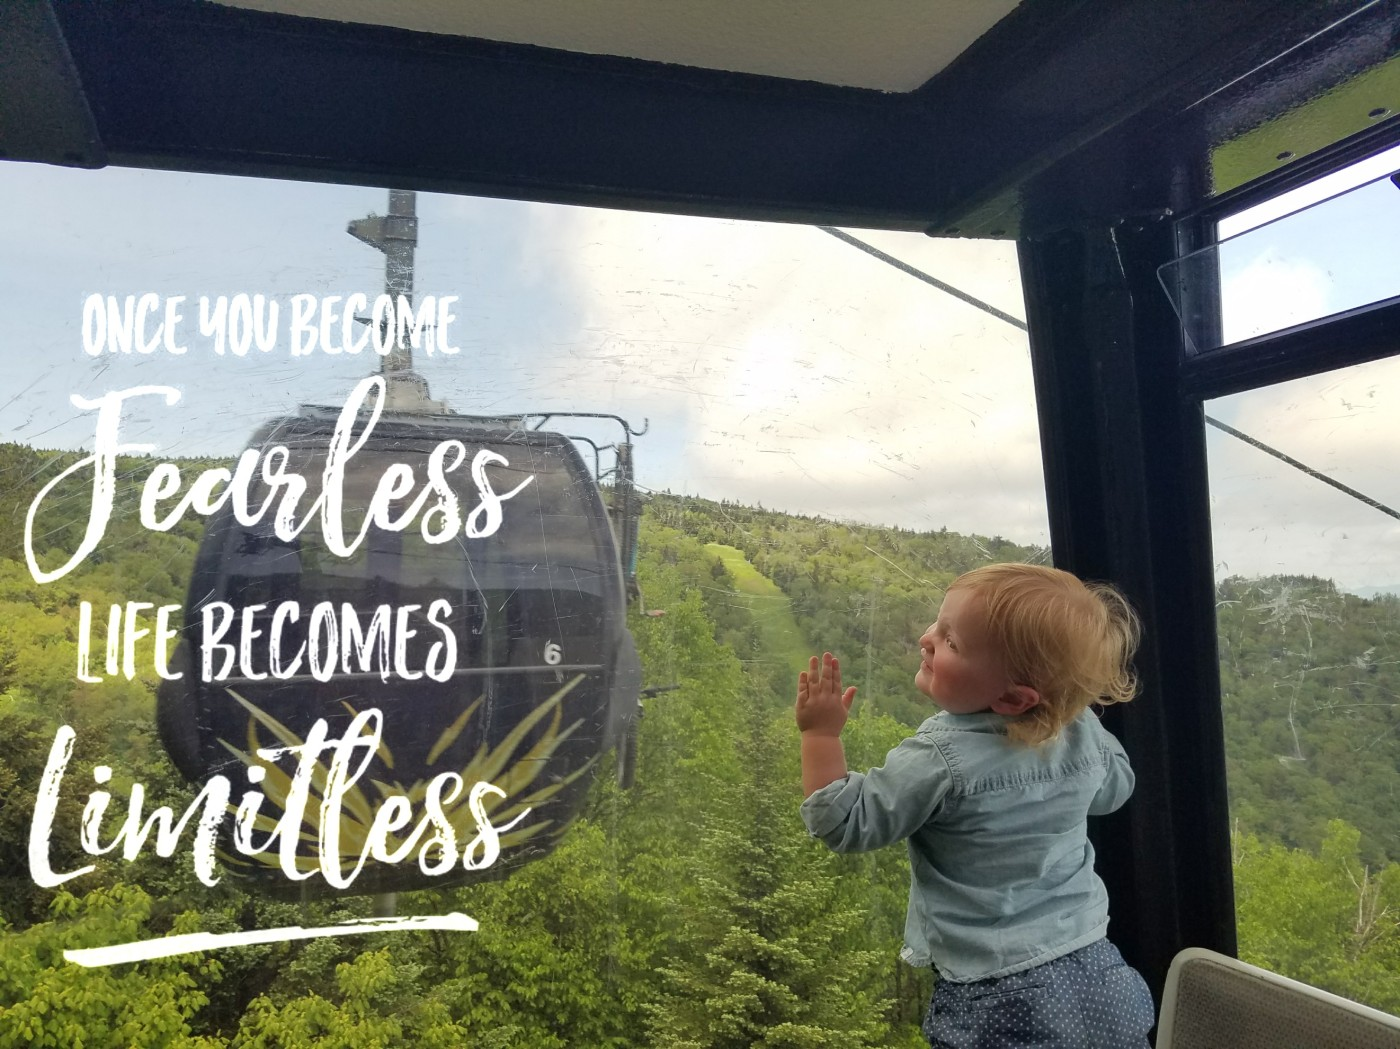 Better Beauty Vermont- Once you become FEARLESS life becomes LIMITLESS